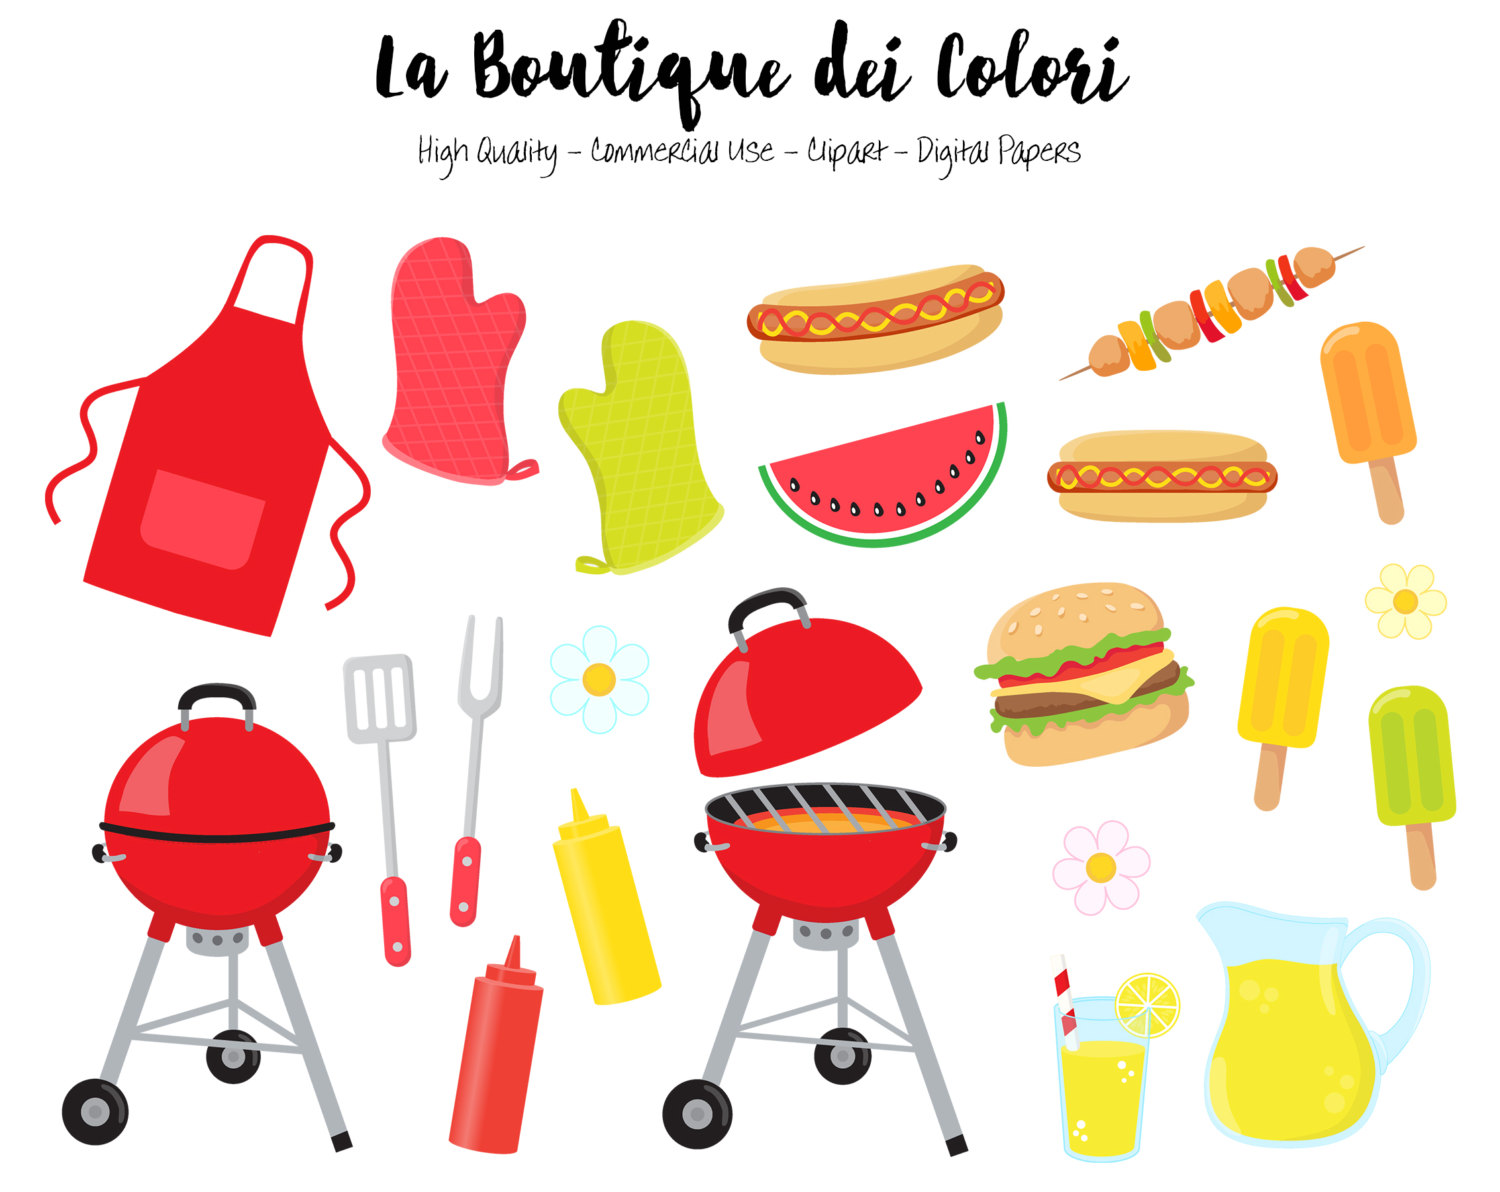 Barbecue clipart clip art. Bbq cute digital illustrations